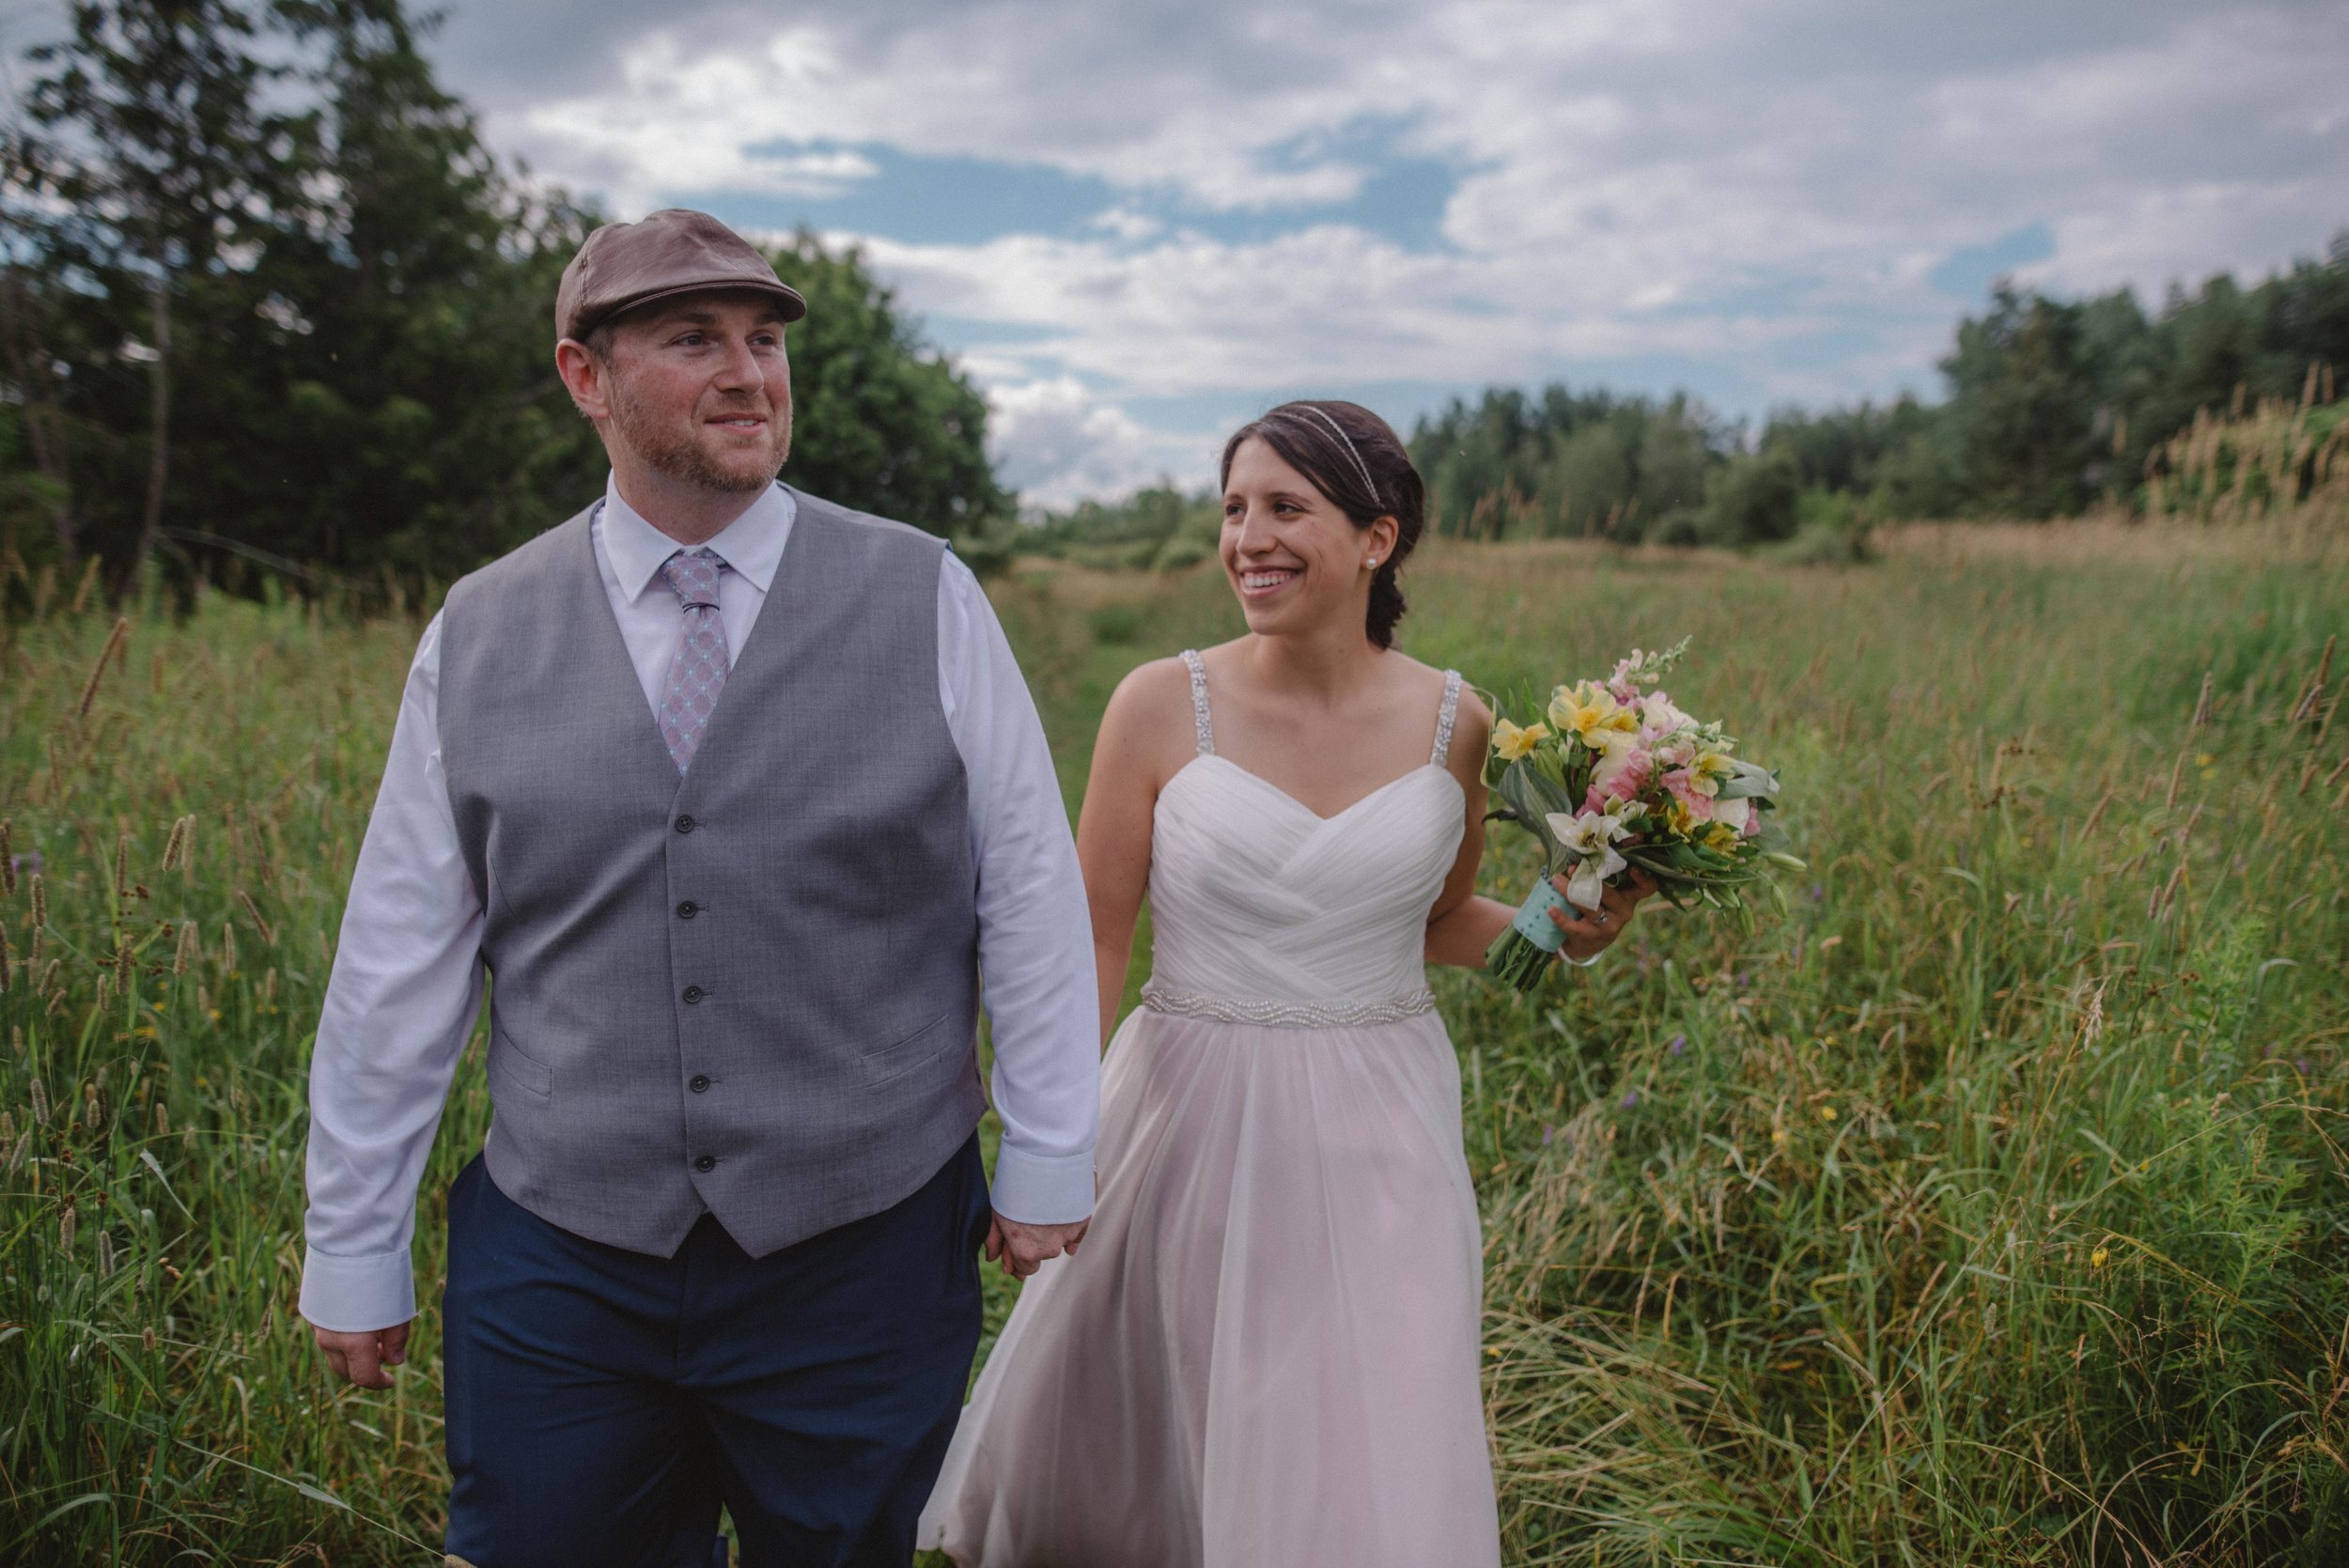 ottawa_wedding_photographer_mariage_gatineau_photographe-71.jpg